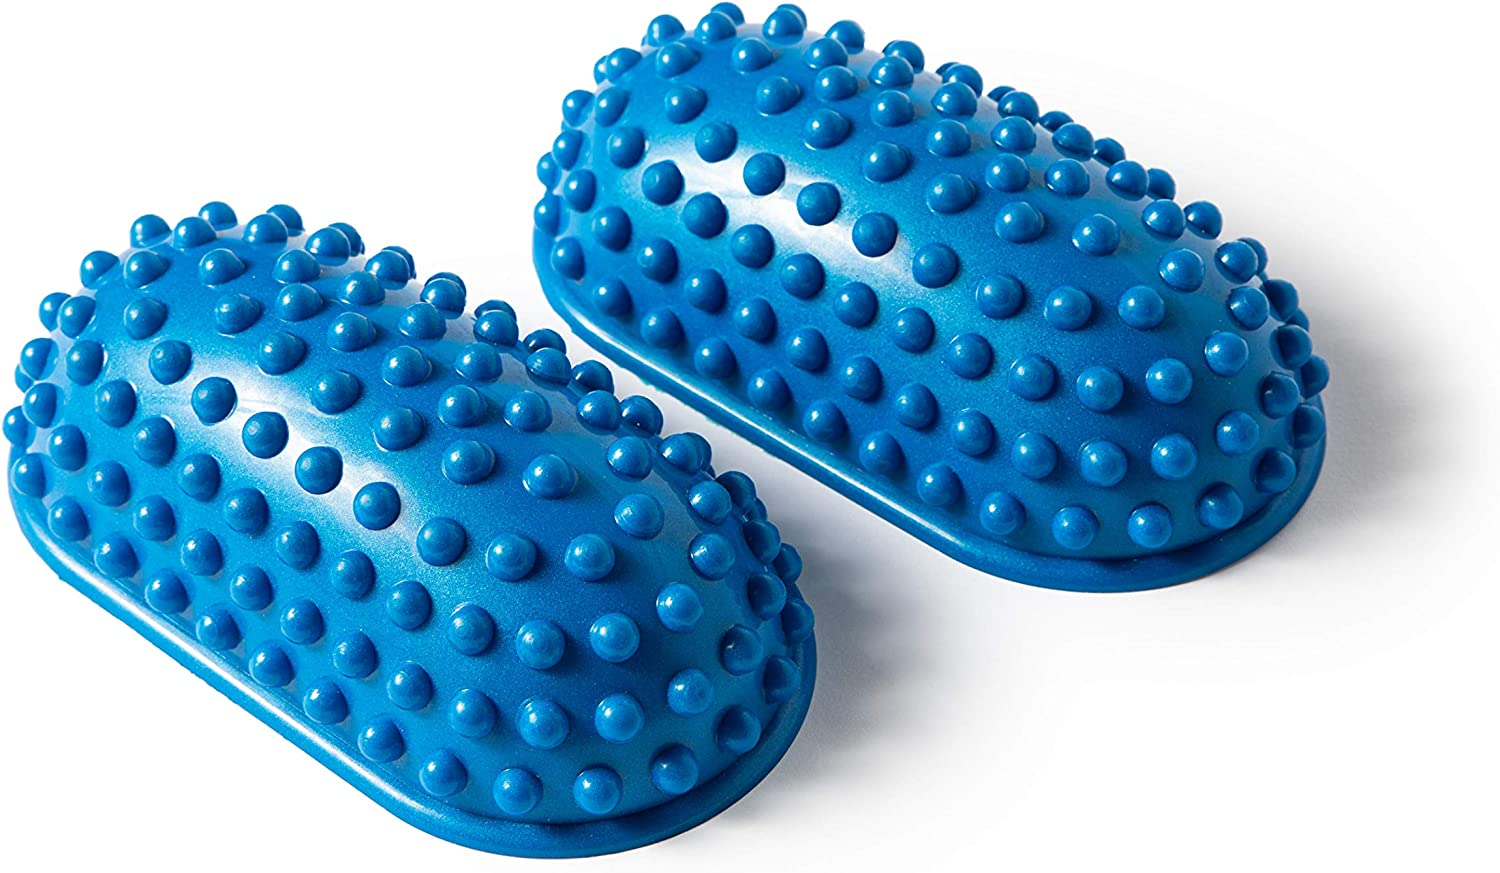 OPTP PRO-PODS Release & Stabilization Tools - Textured Balance Pods for Foot Arch Pain Relief, Plantar Fasciitis, Myofascial Massage and More